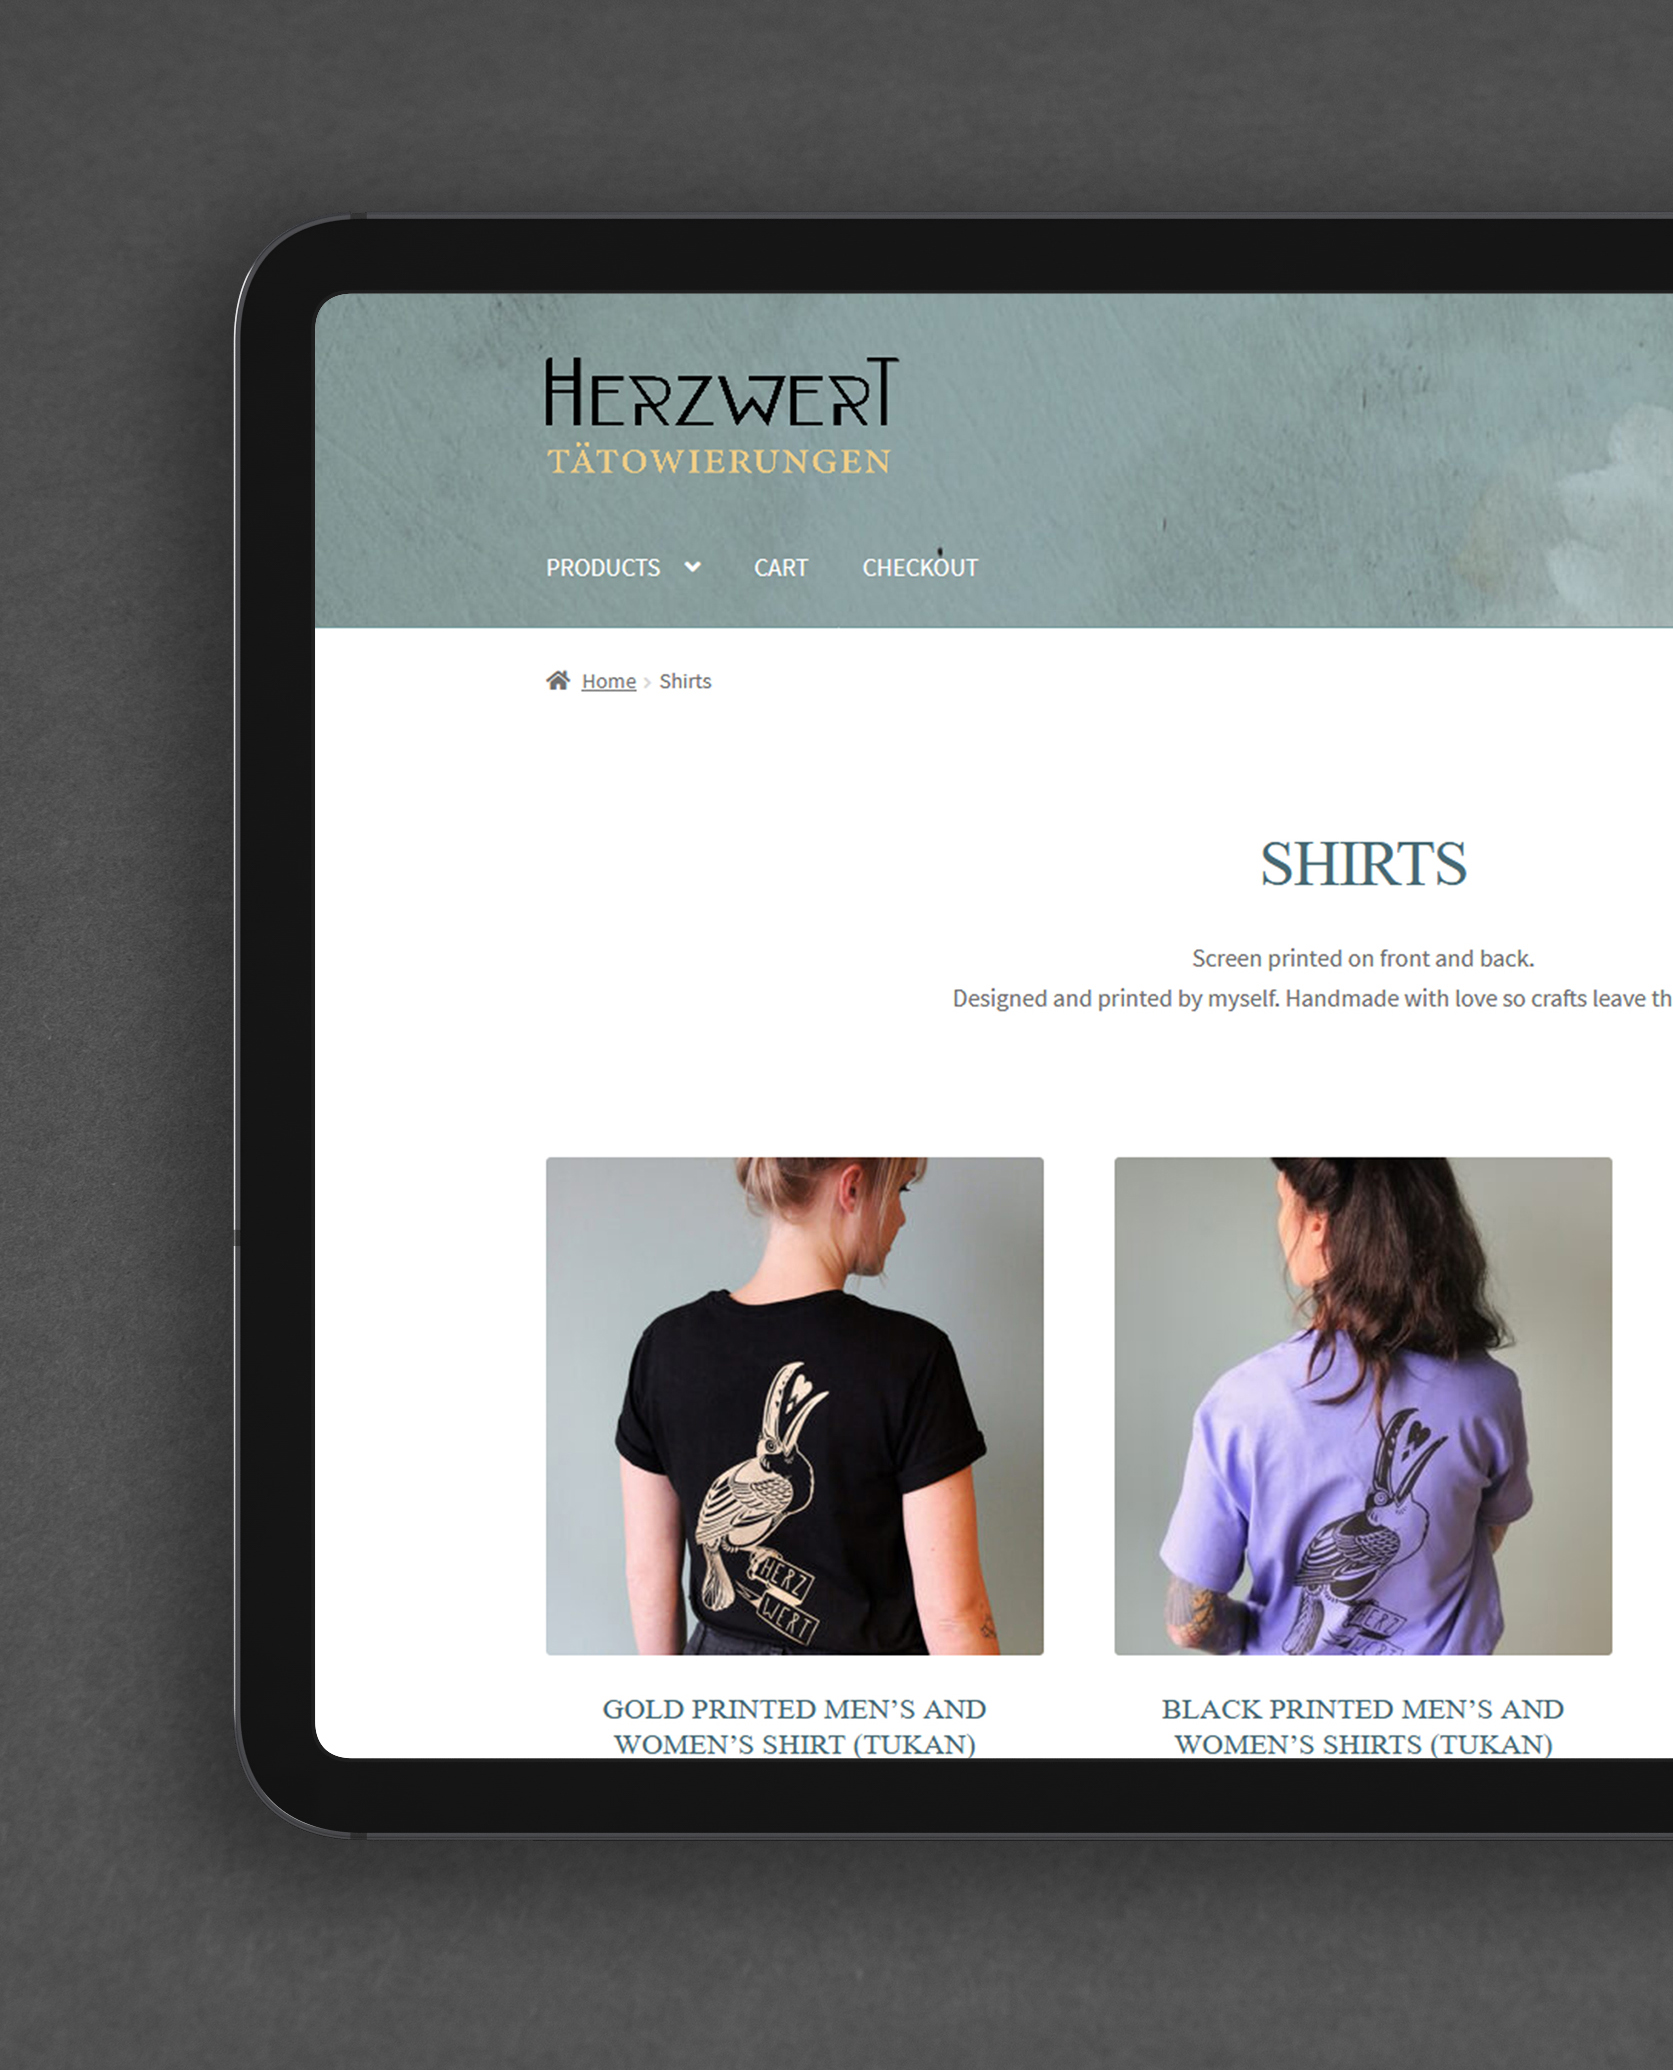 Herzwert Tätowierungen E-Commerce Shop Design